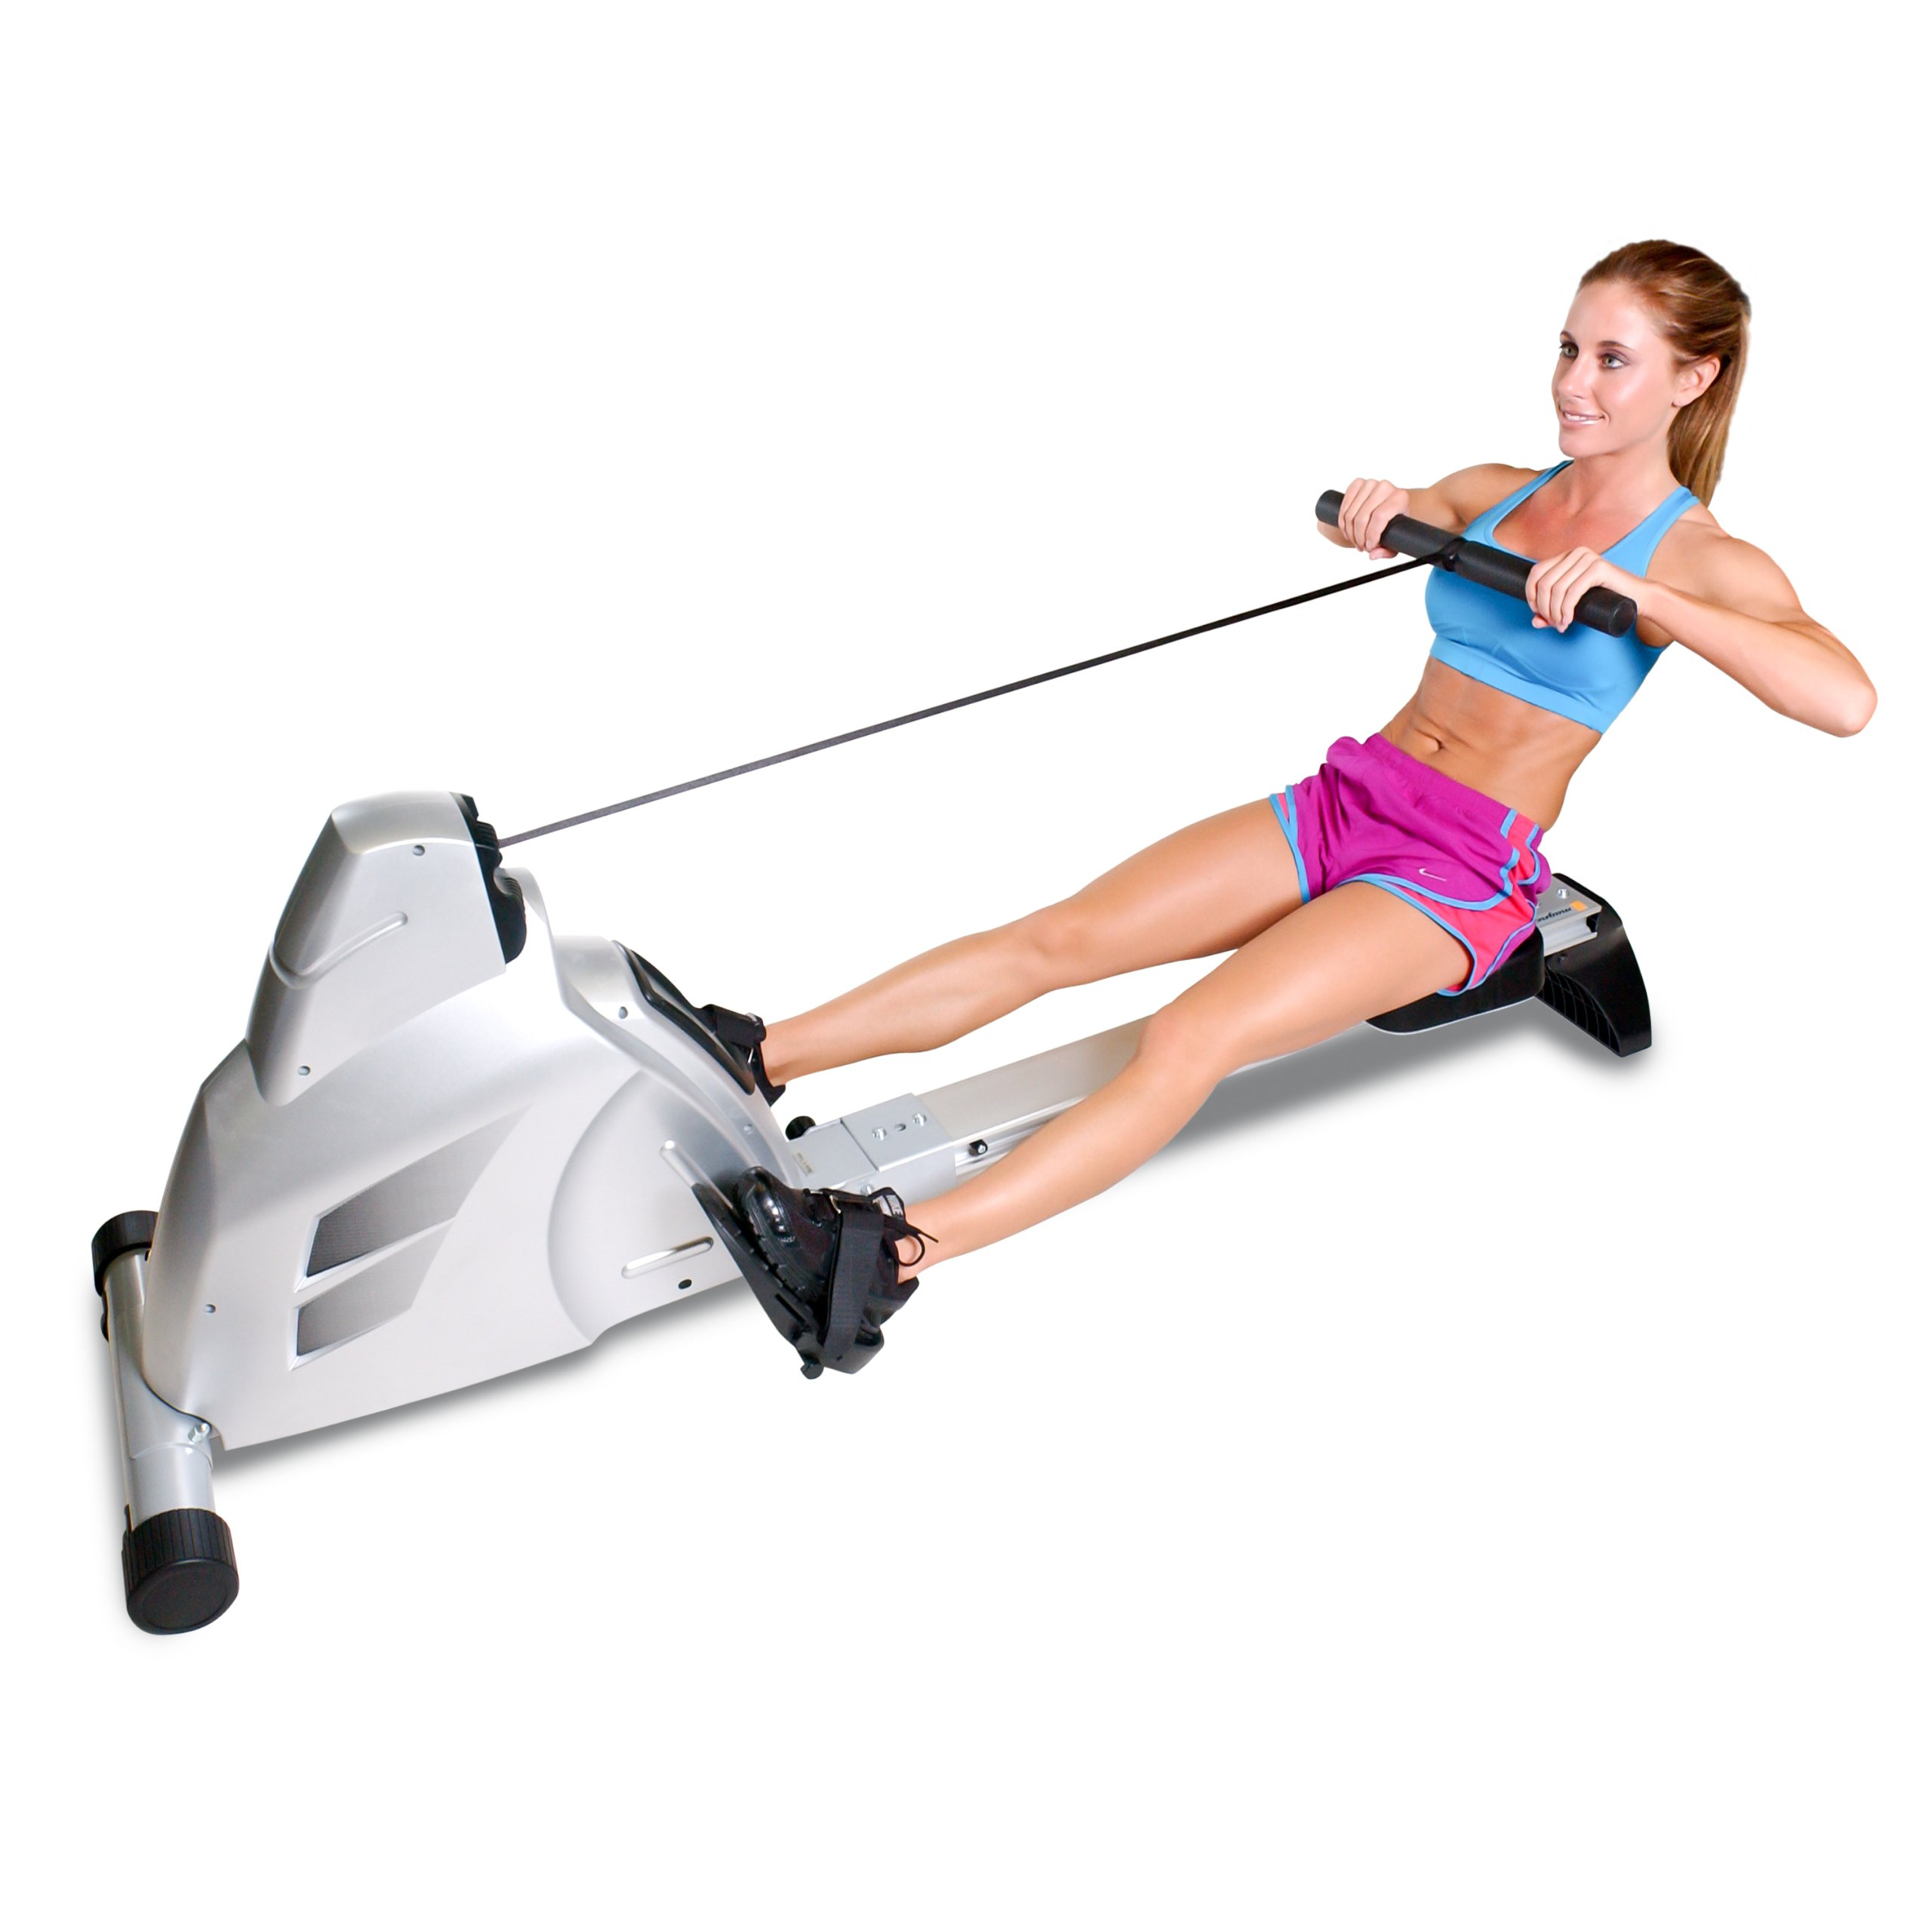 Velocity Exercise Magnetic Rower by Velocity Exercise (Image #6)